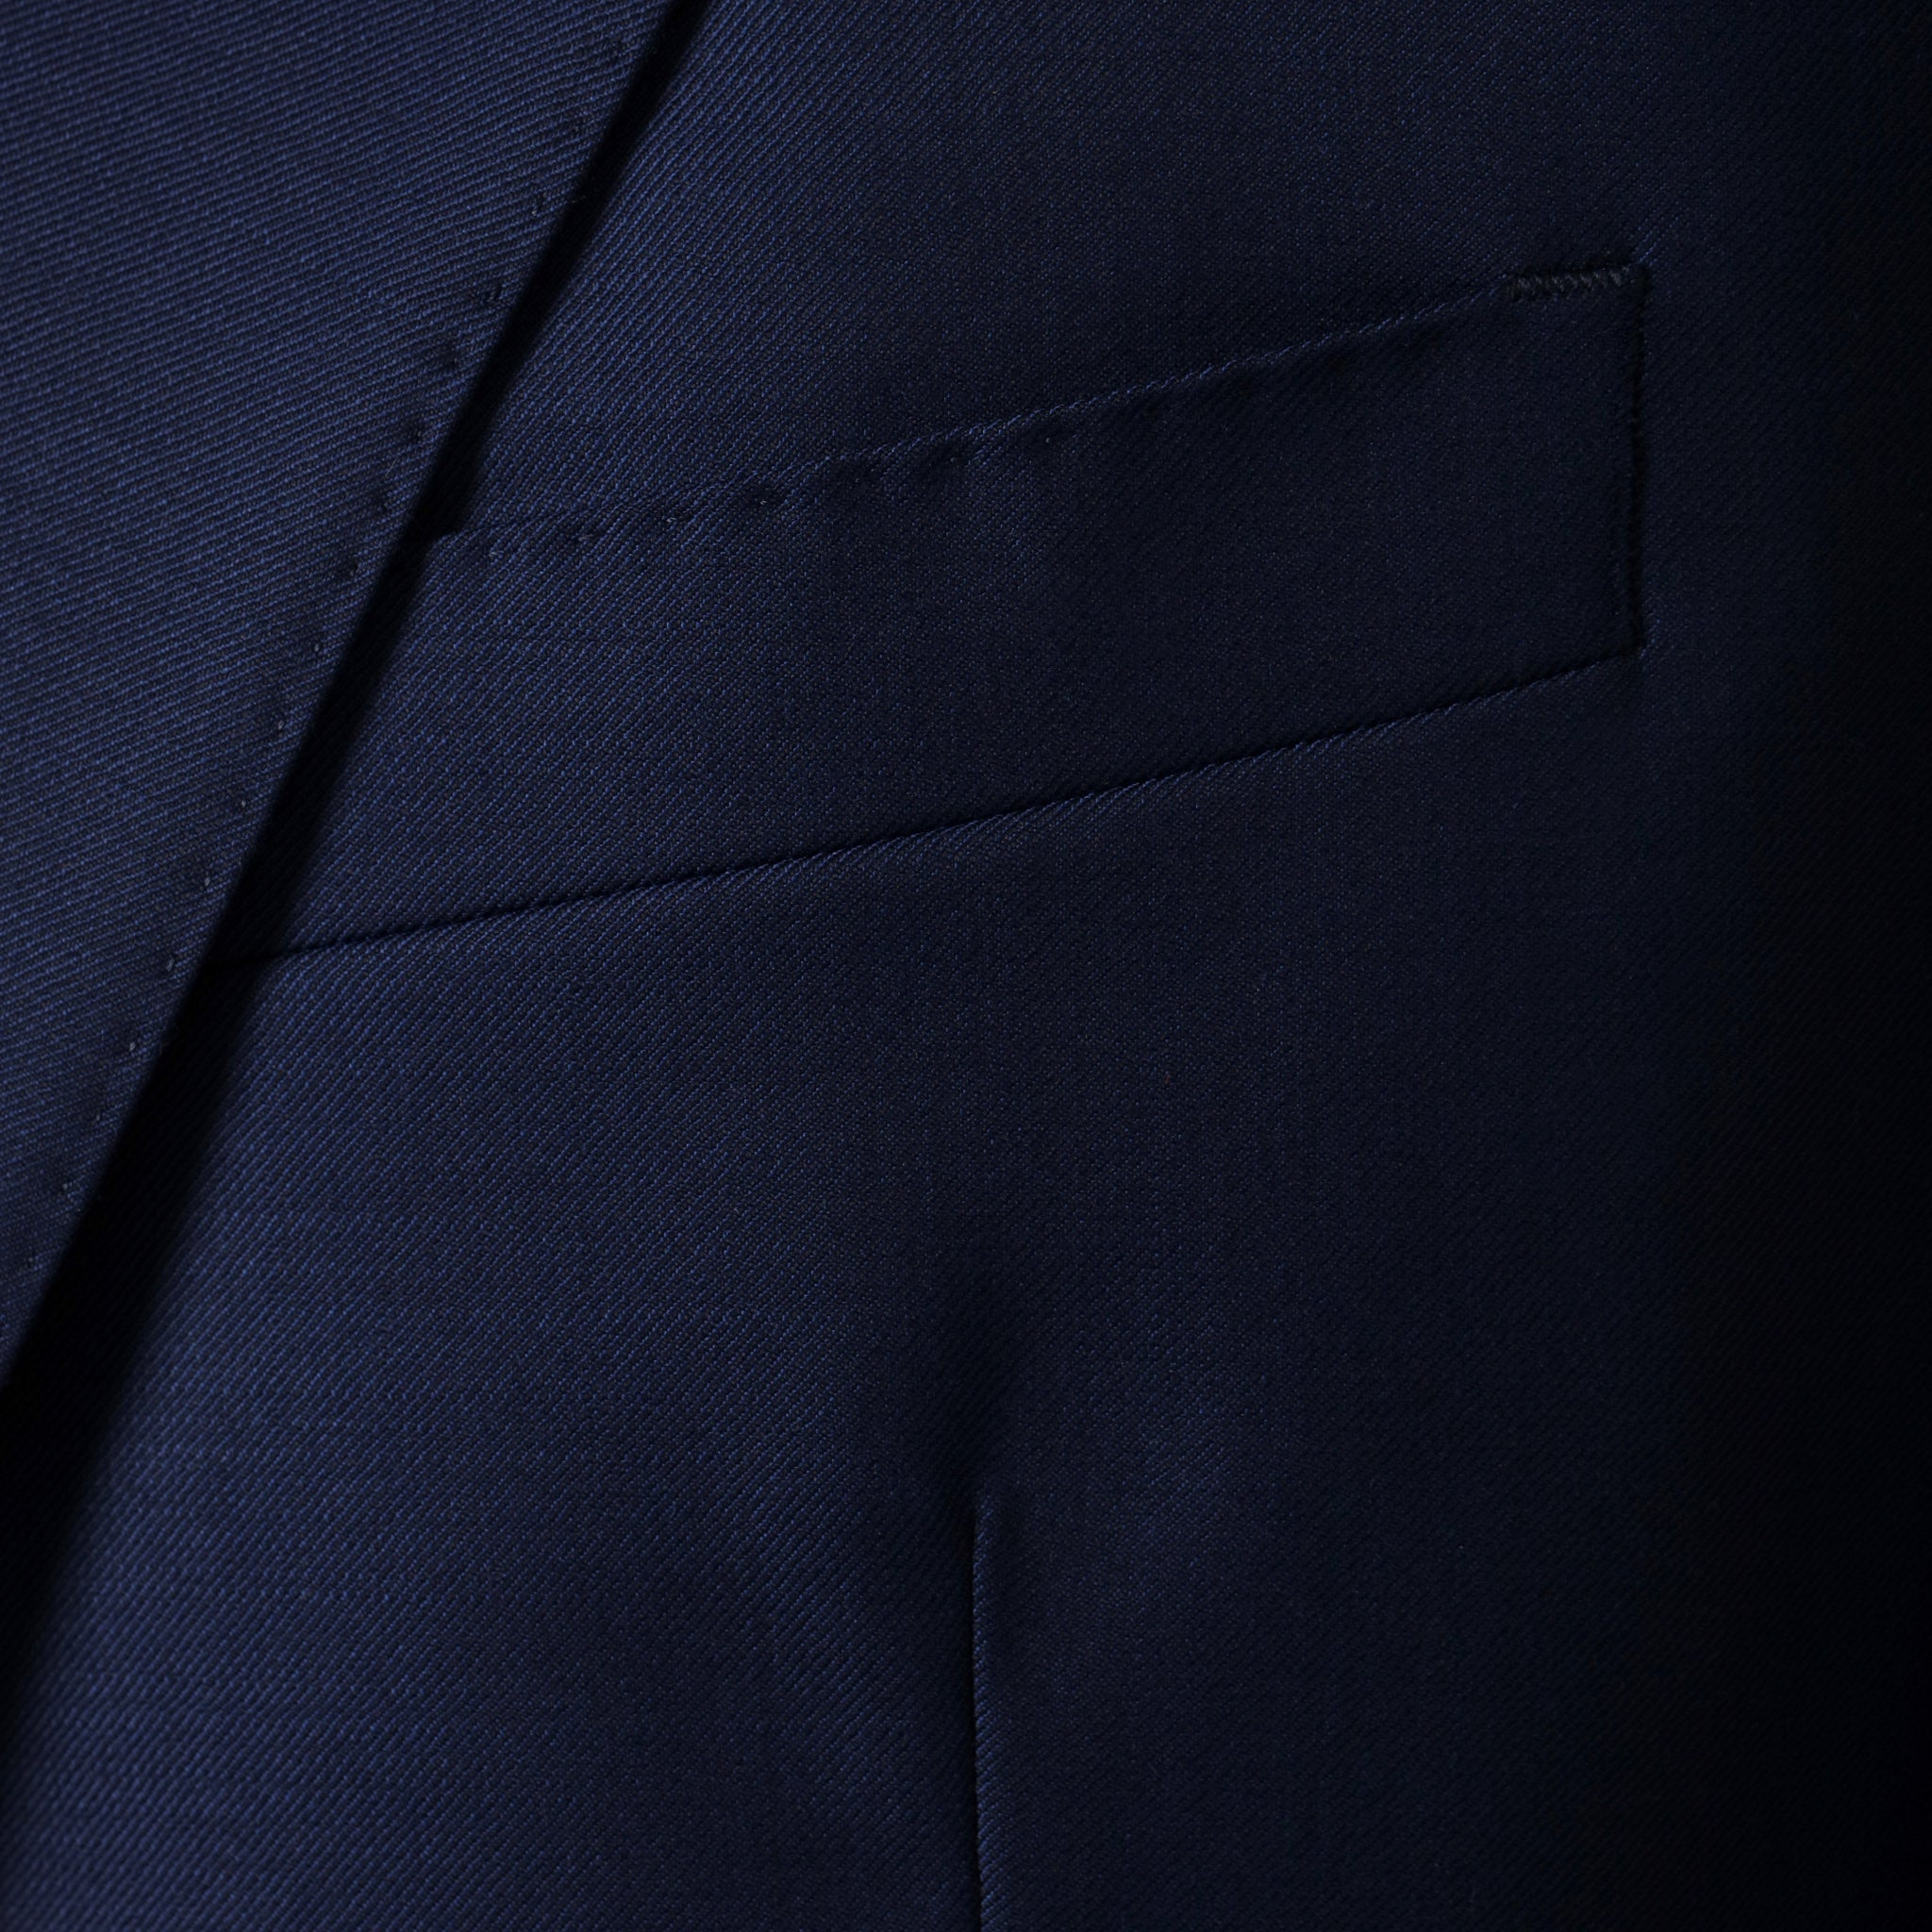 Essentials Luxe Suiting in British Blue